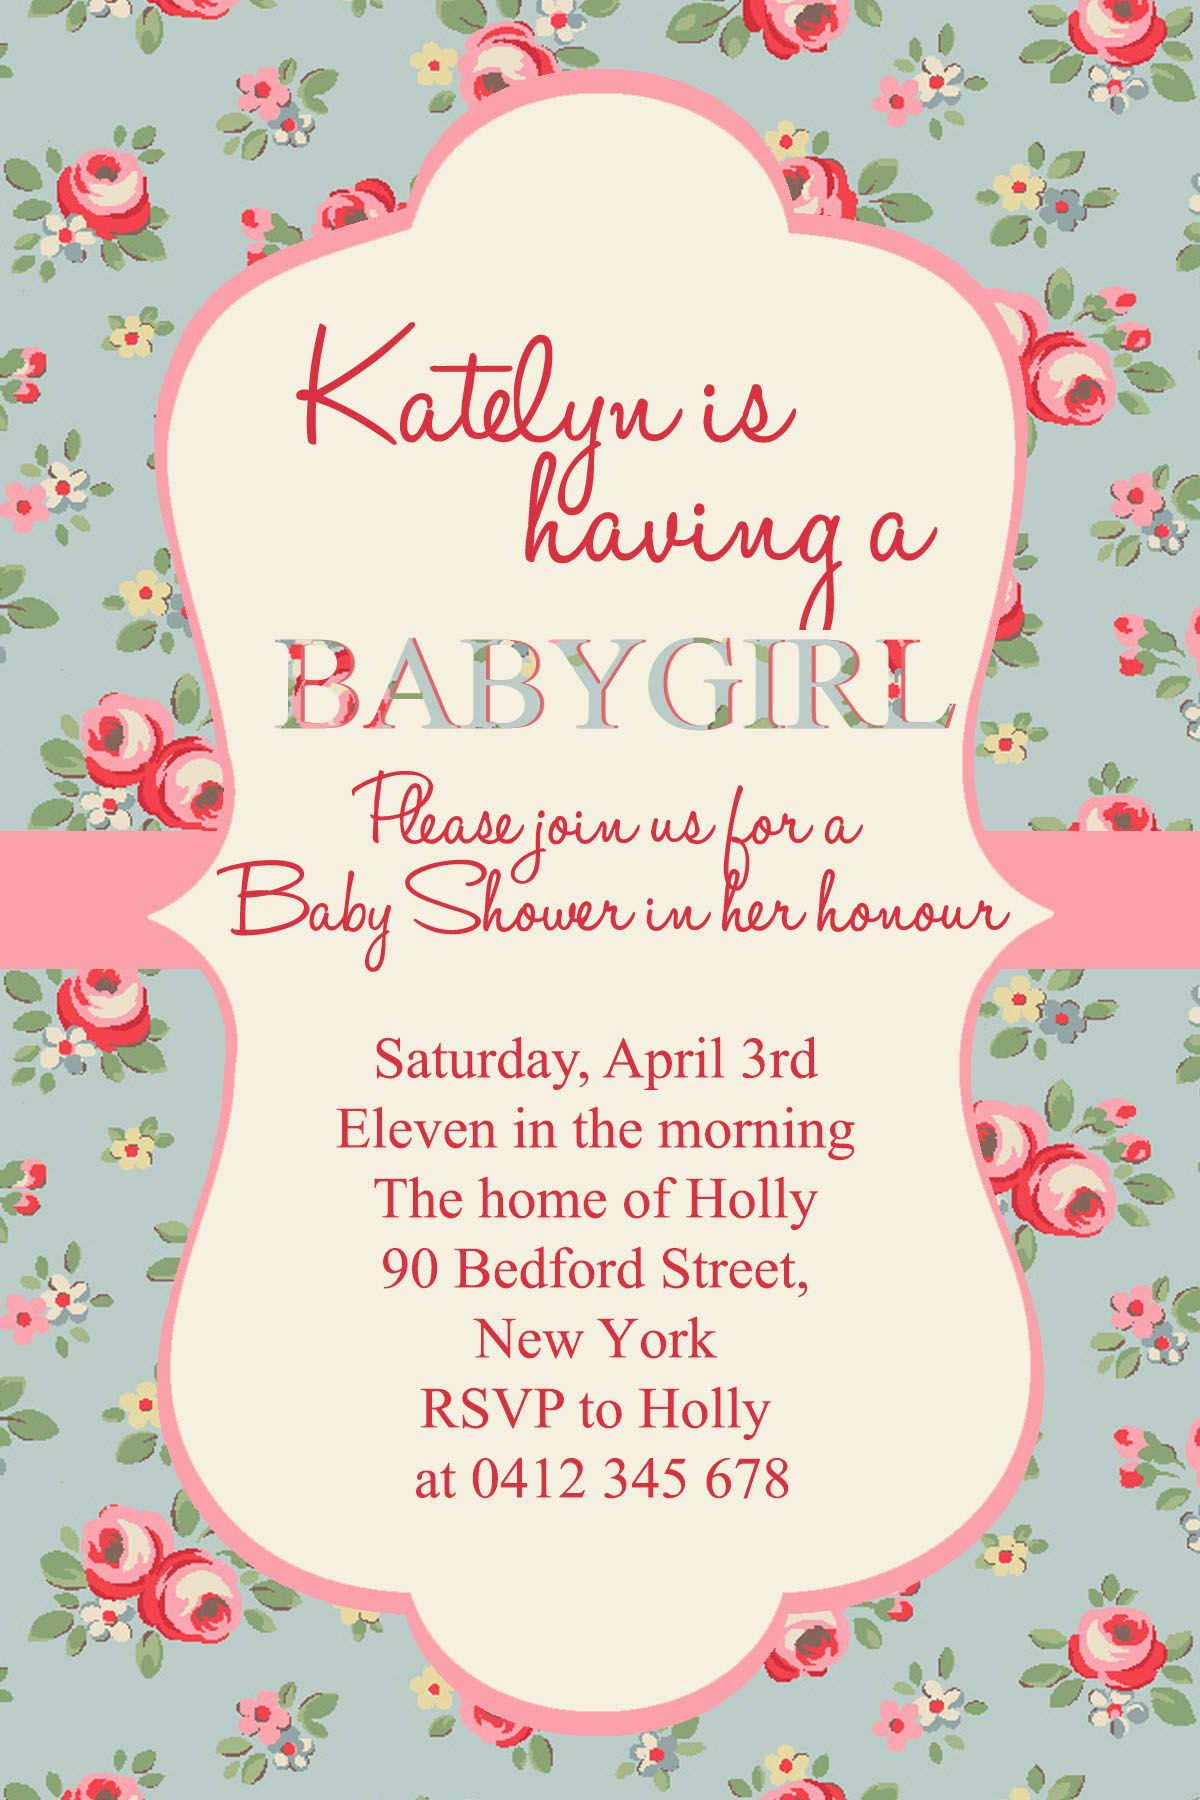 Girl Baby Shower Fonts Used Halo Hand Letter Times New Roman  3e13cd0625b8e95e2f8dd800585d1975 154318724706241440